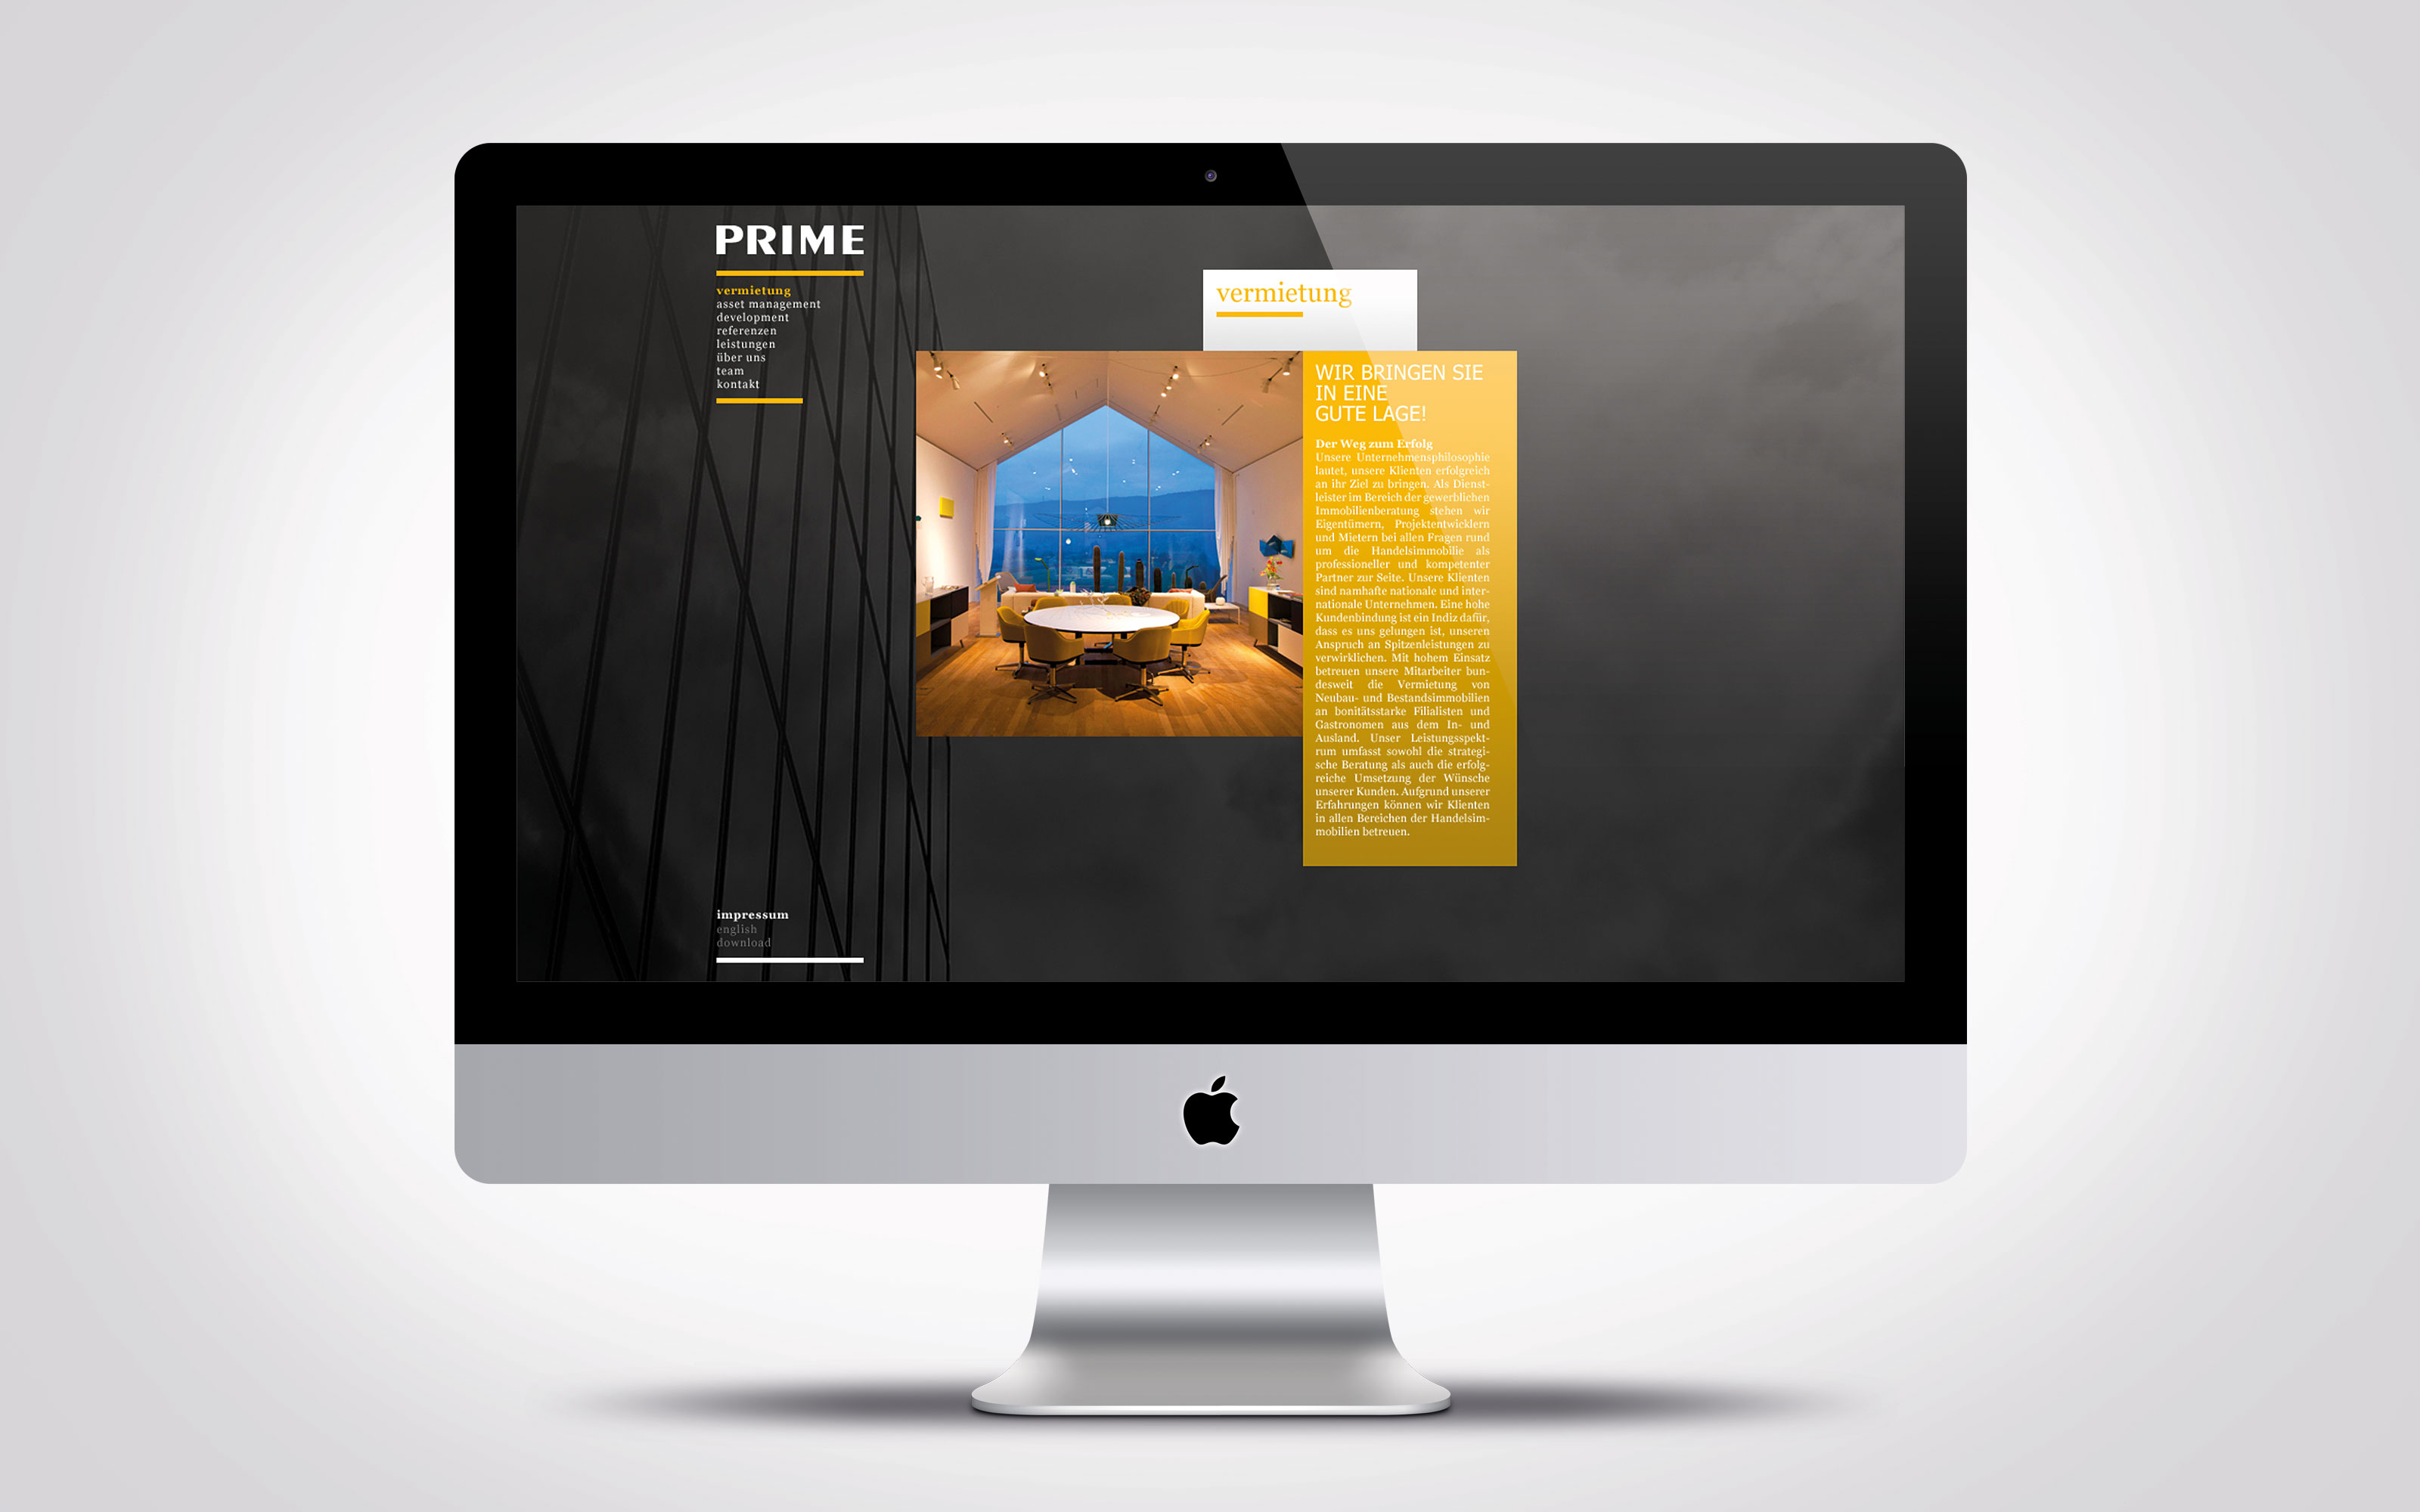 maniana-design_webseite_prime-real-estate_02